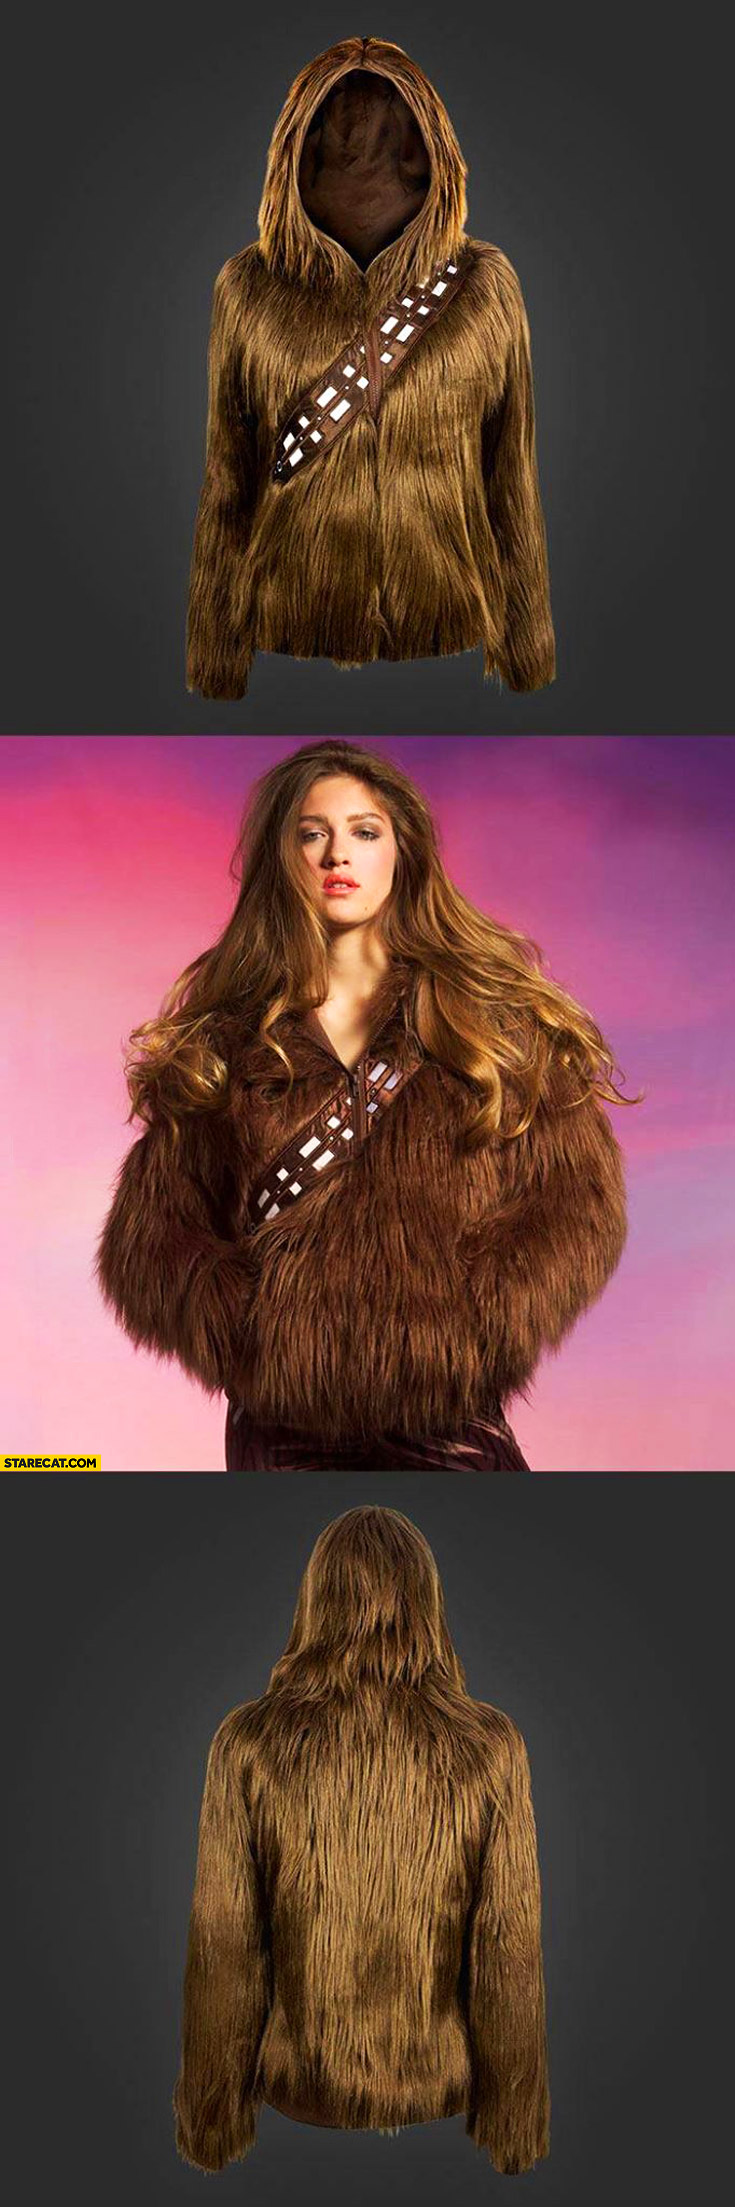 Chewbacca fur woman's jacket